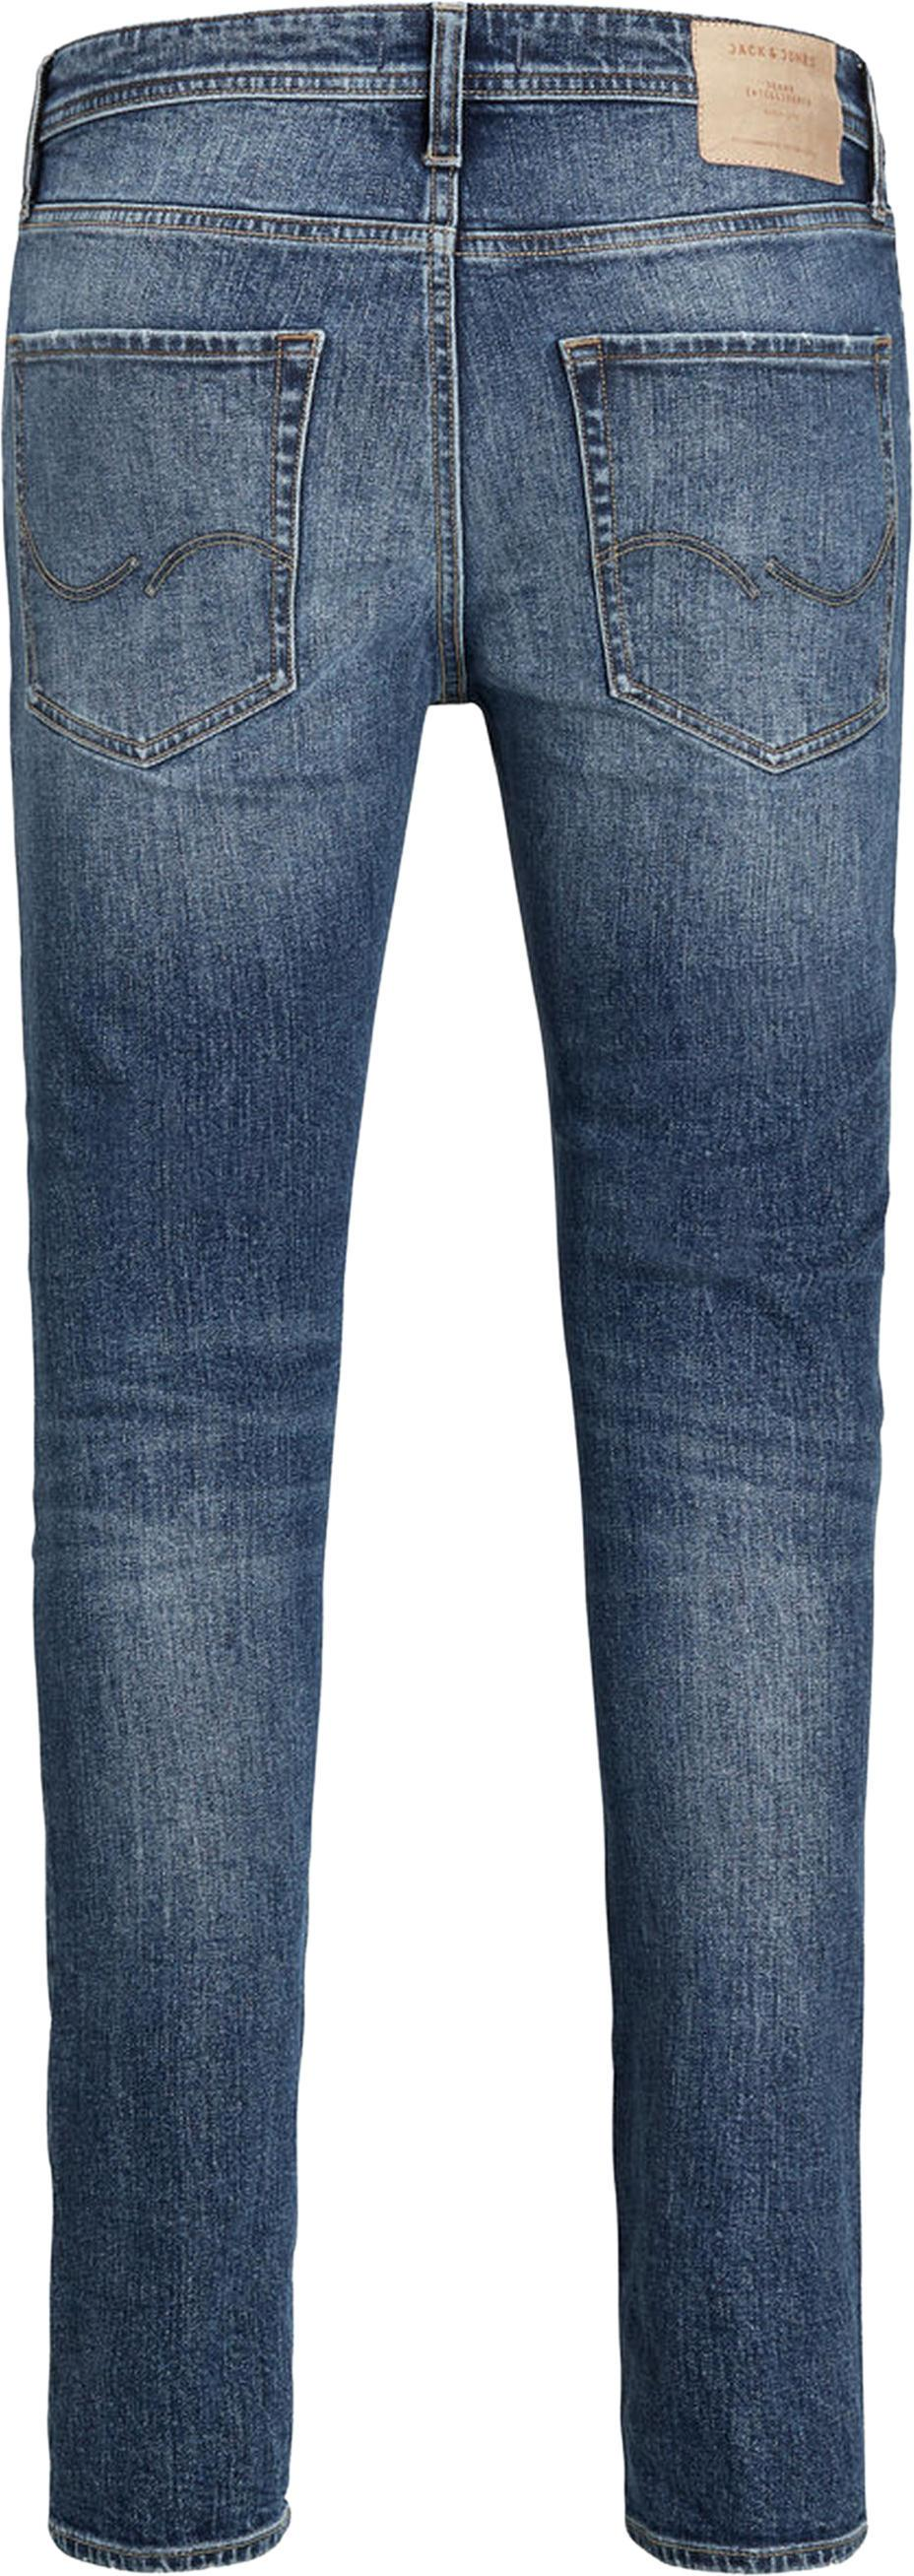 Jack & Jones Tim Original 691 Slim Fit Denim Jeans Blue